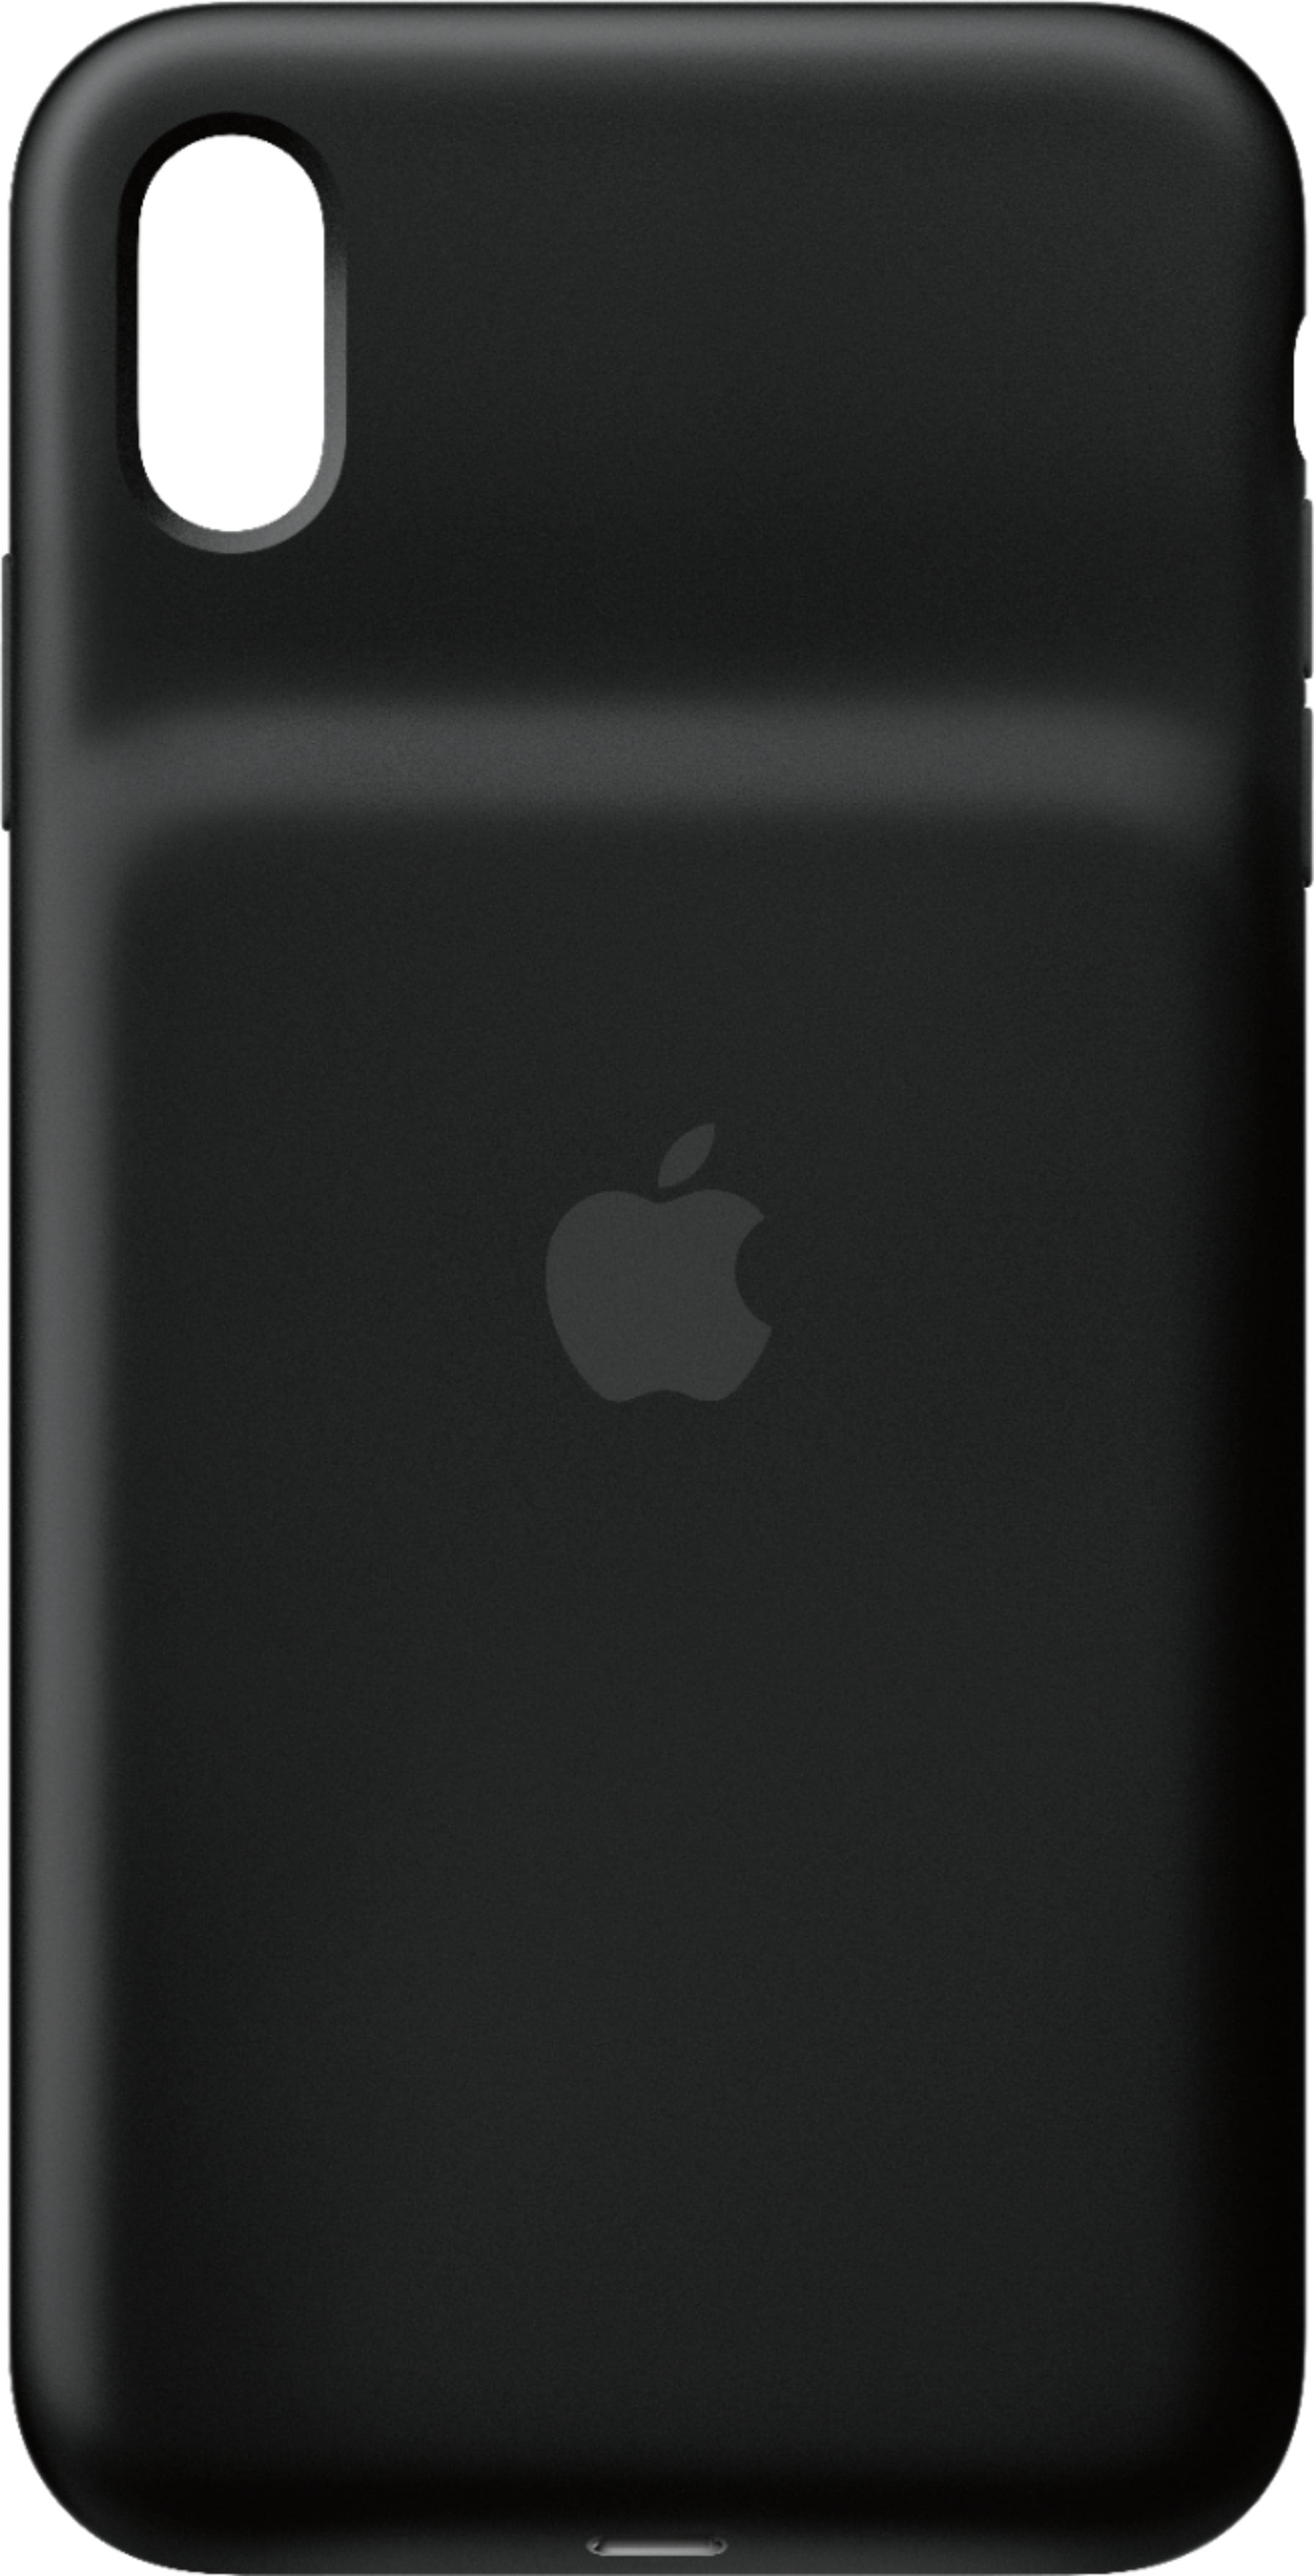 Apple iPhone XS Max Smart Battery Case Black (Only) - Best Buy for $103.99